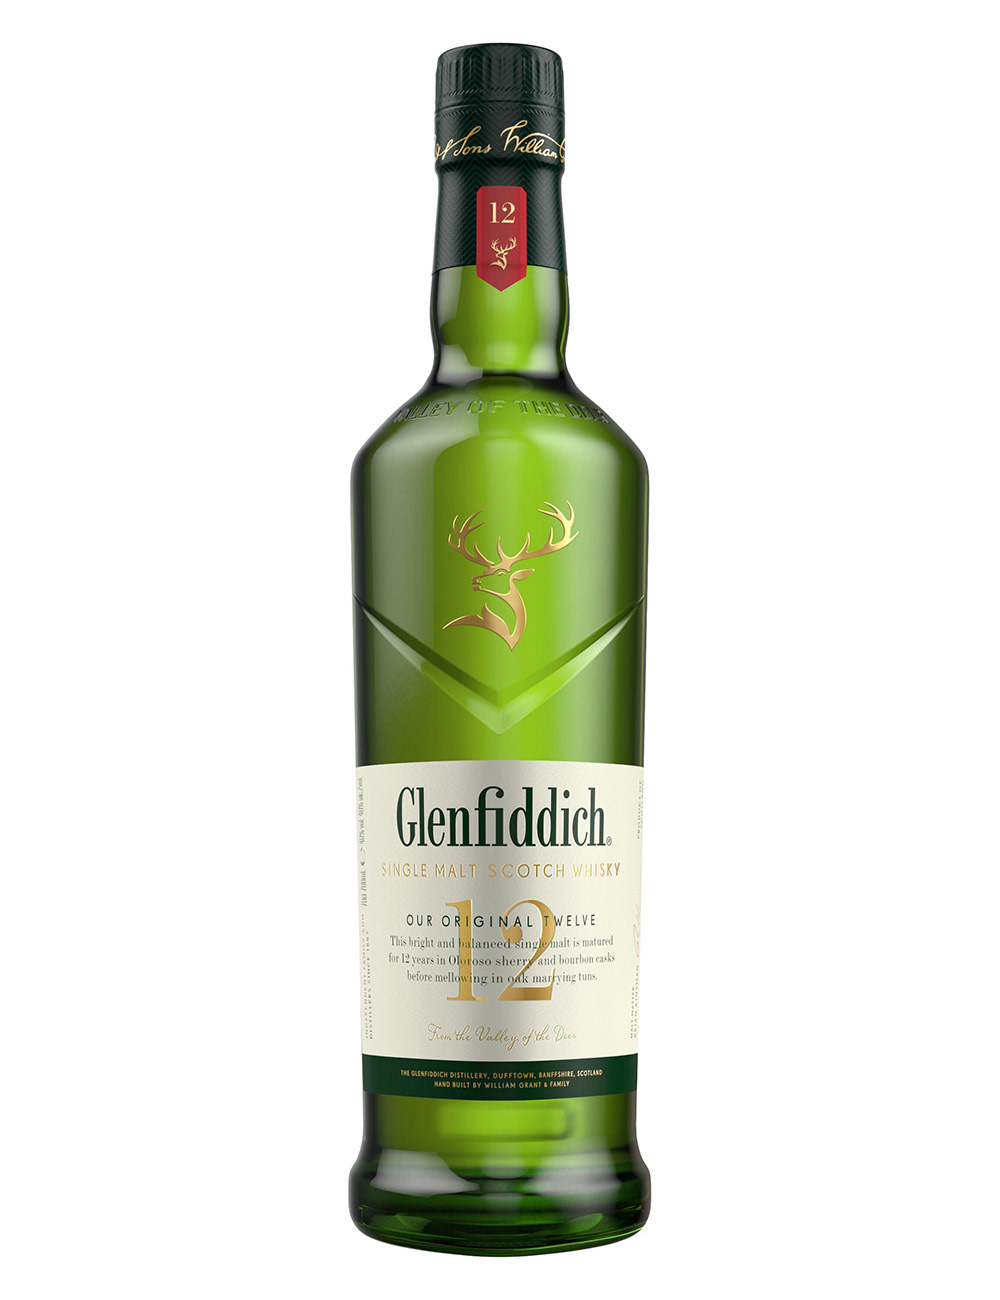 Smuk Glenfiddich Whisky: Single Malt Scotch Whisky - 12 to 50 Year Old LK-59